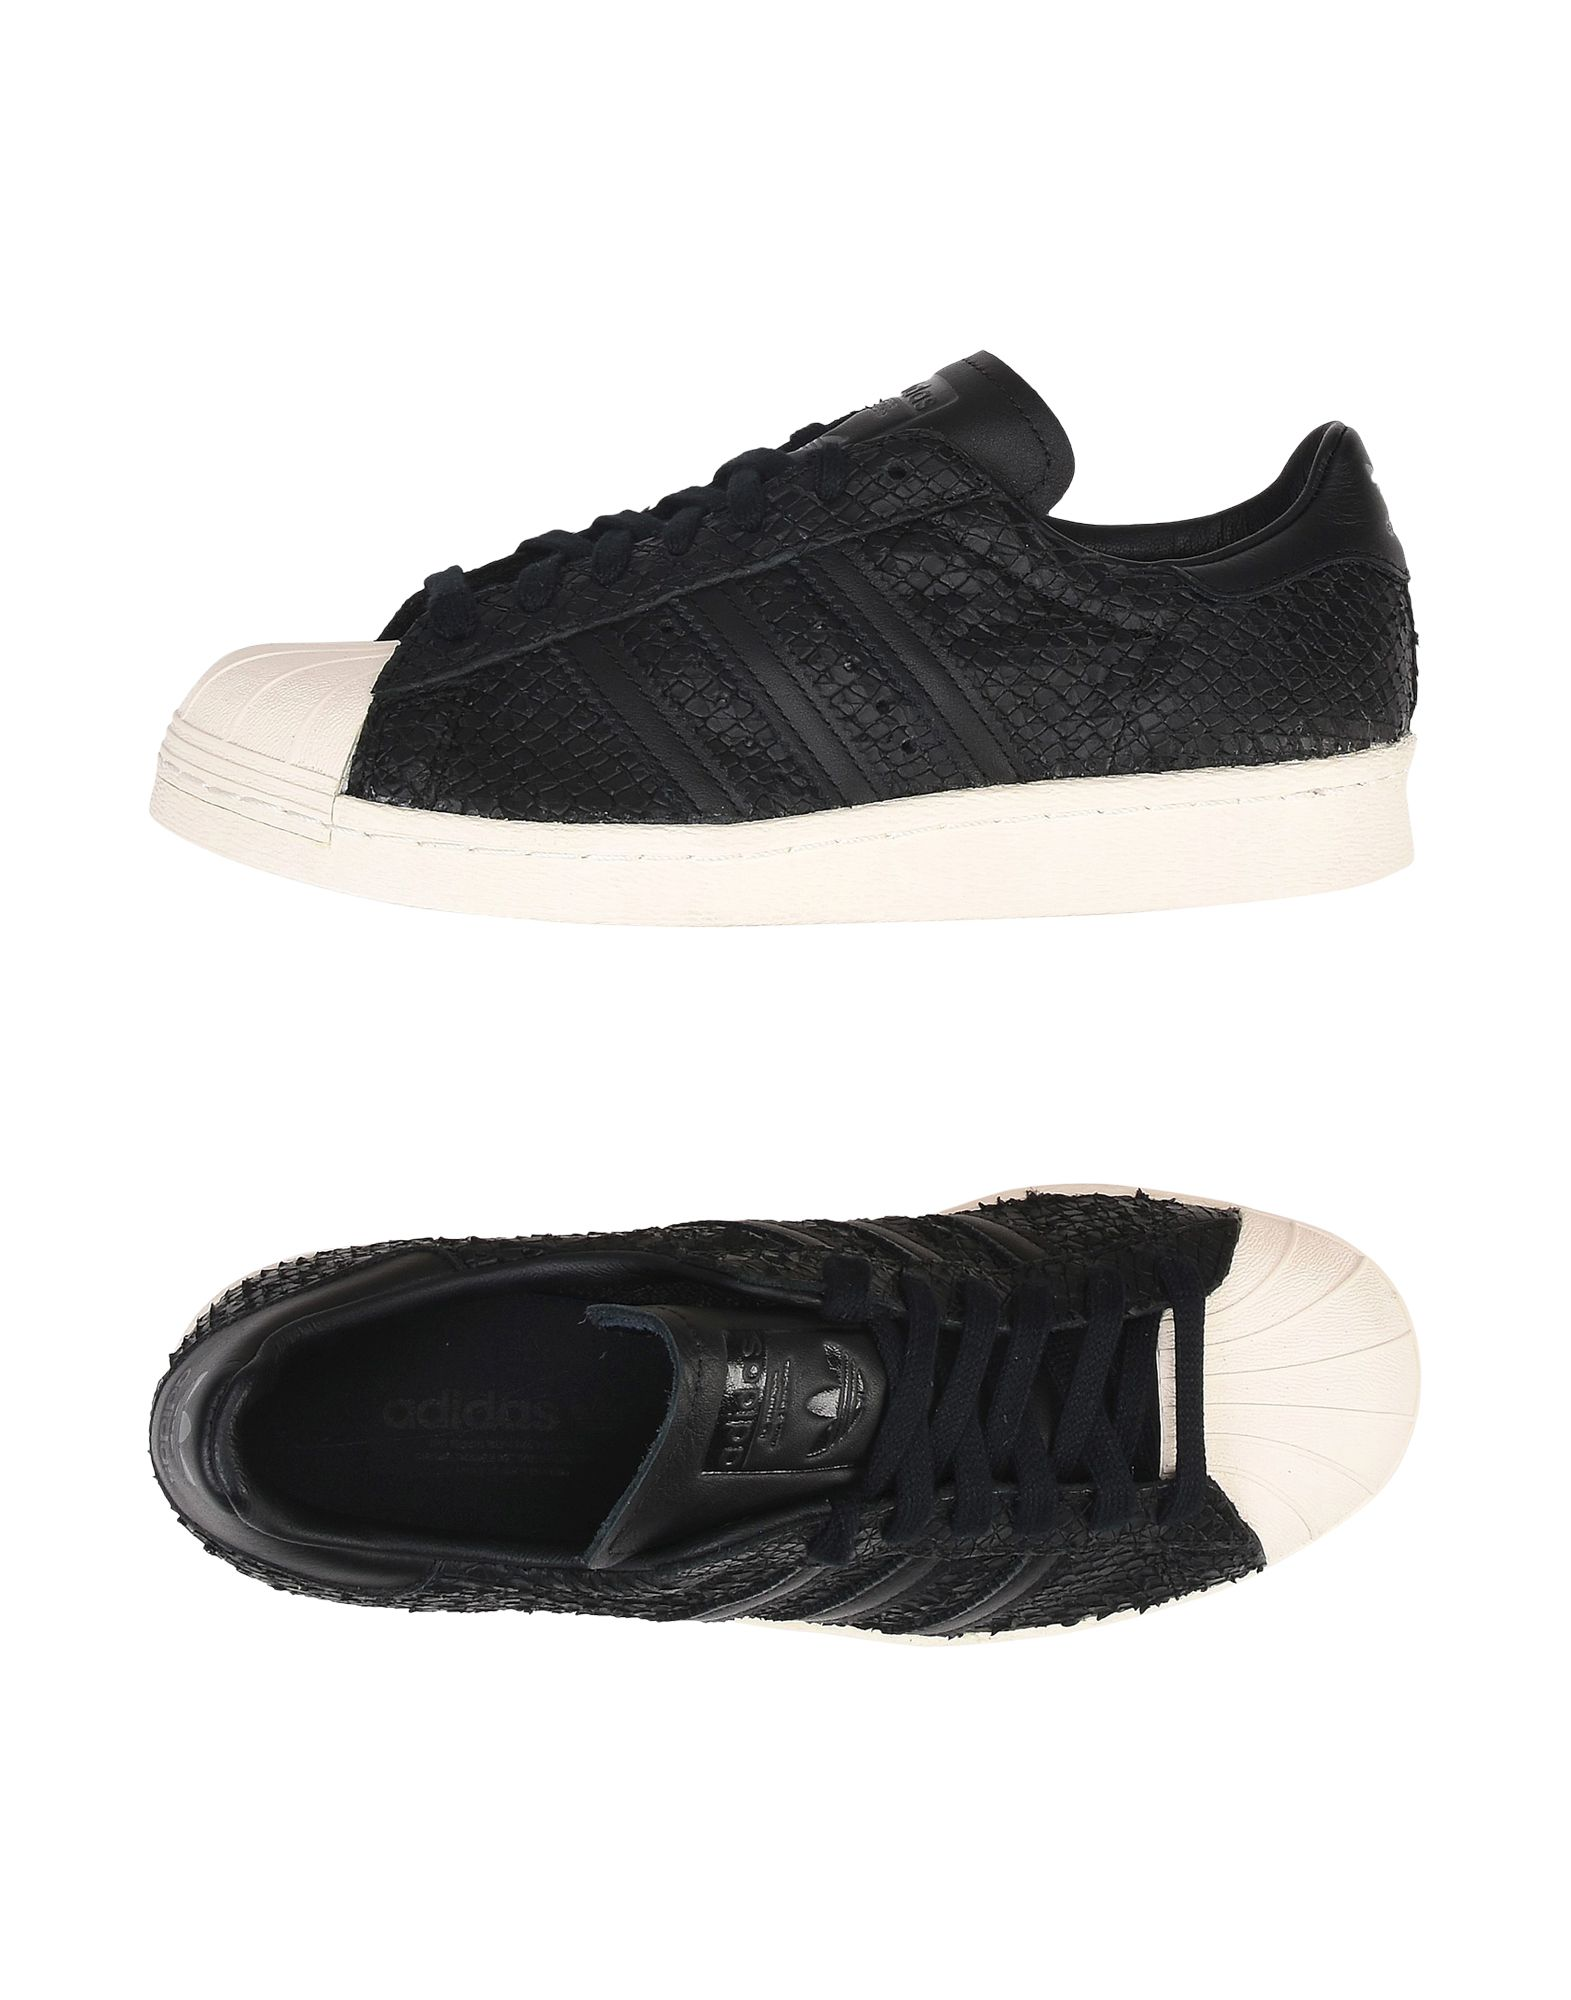 Baskets Adidas Originals Superstar 80S W - Femme - Baskets Adidas Originals Noir Remise de marque